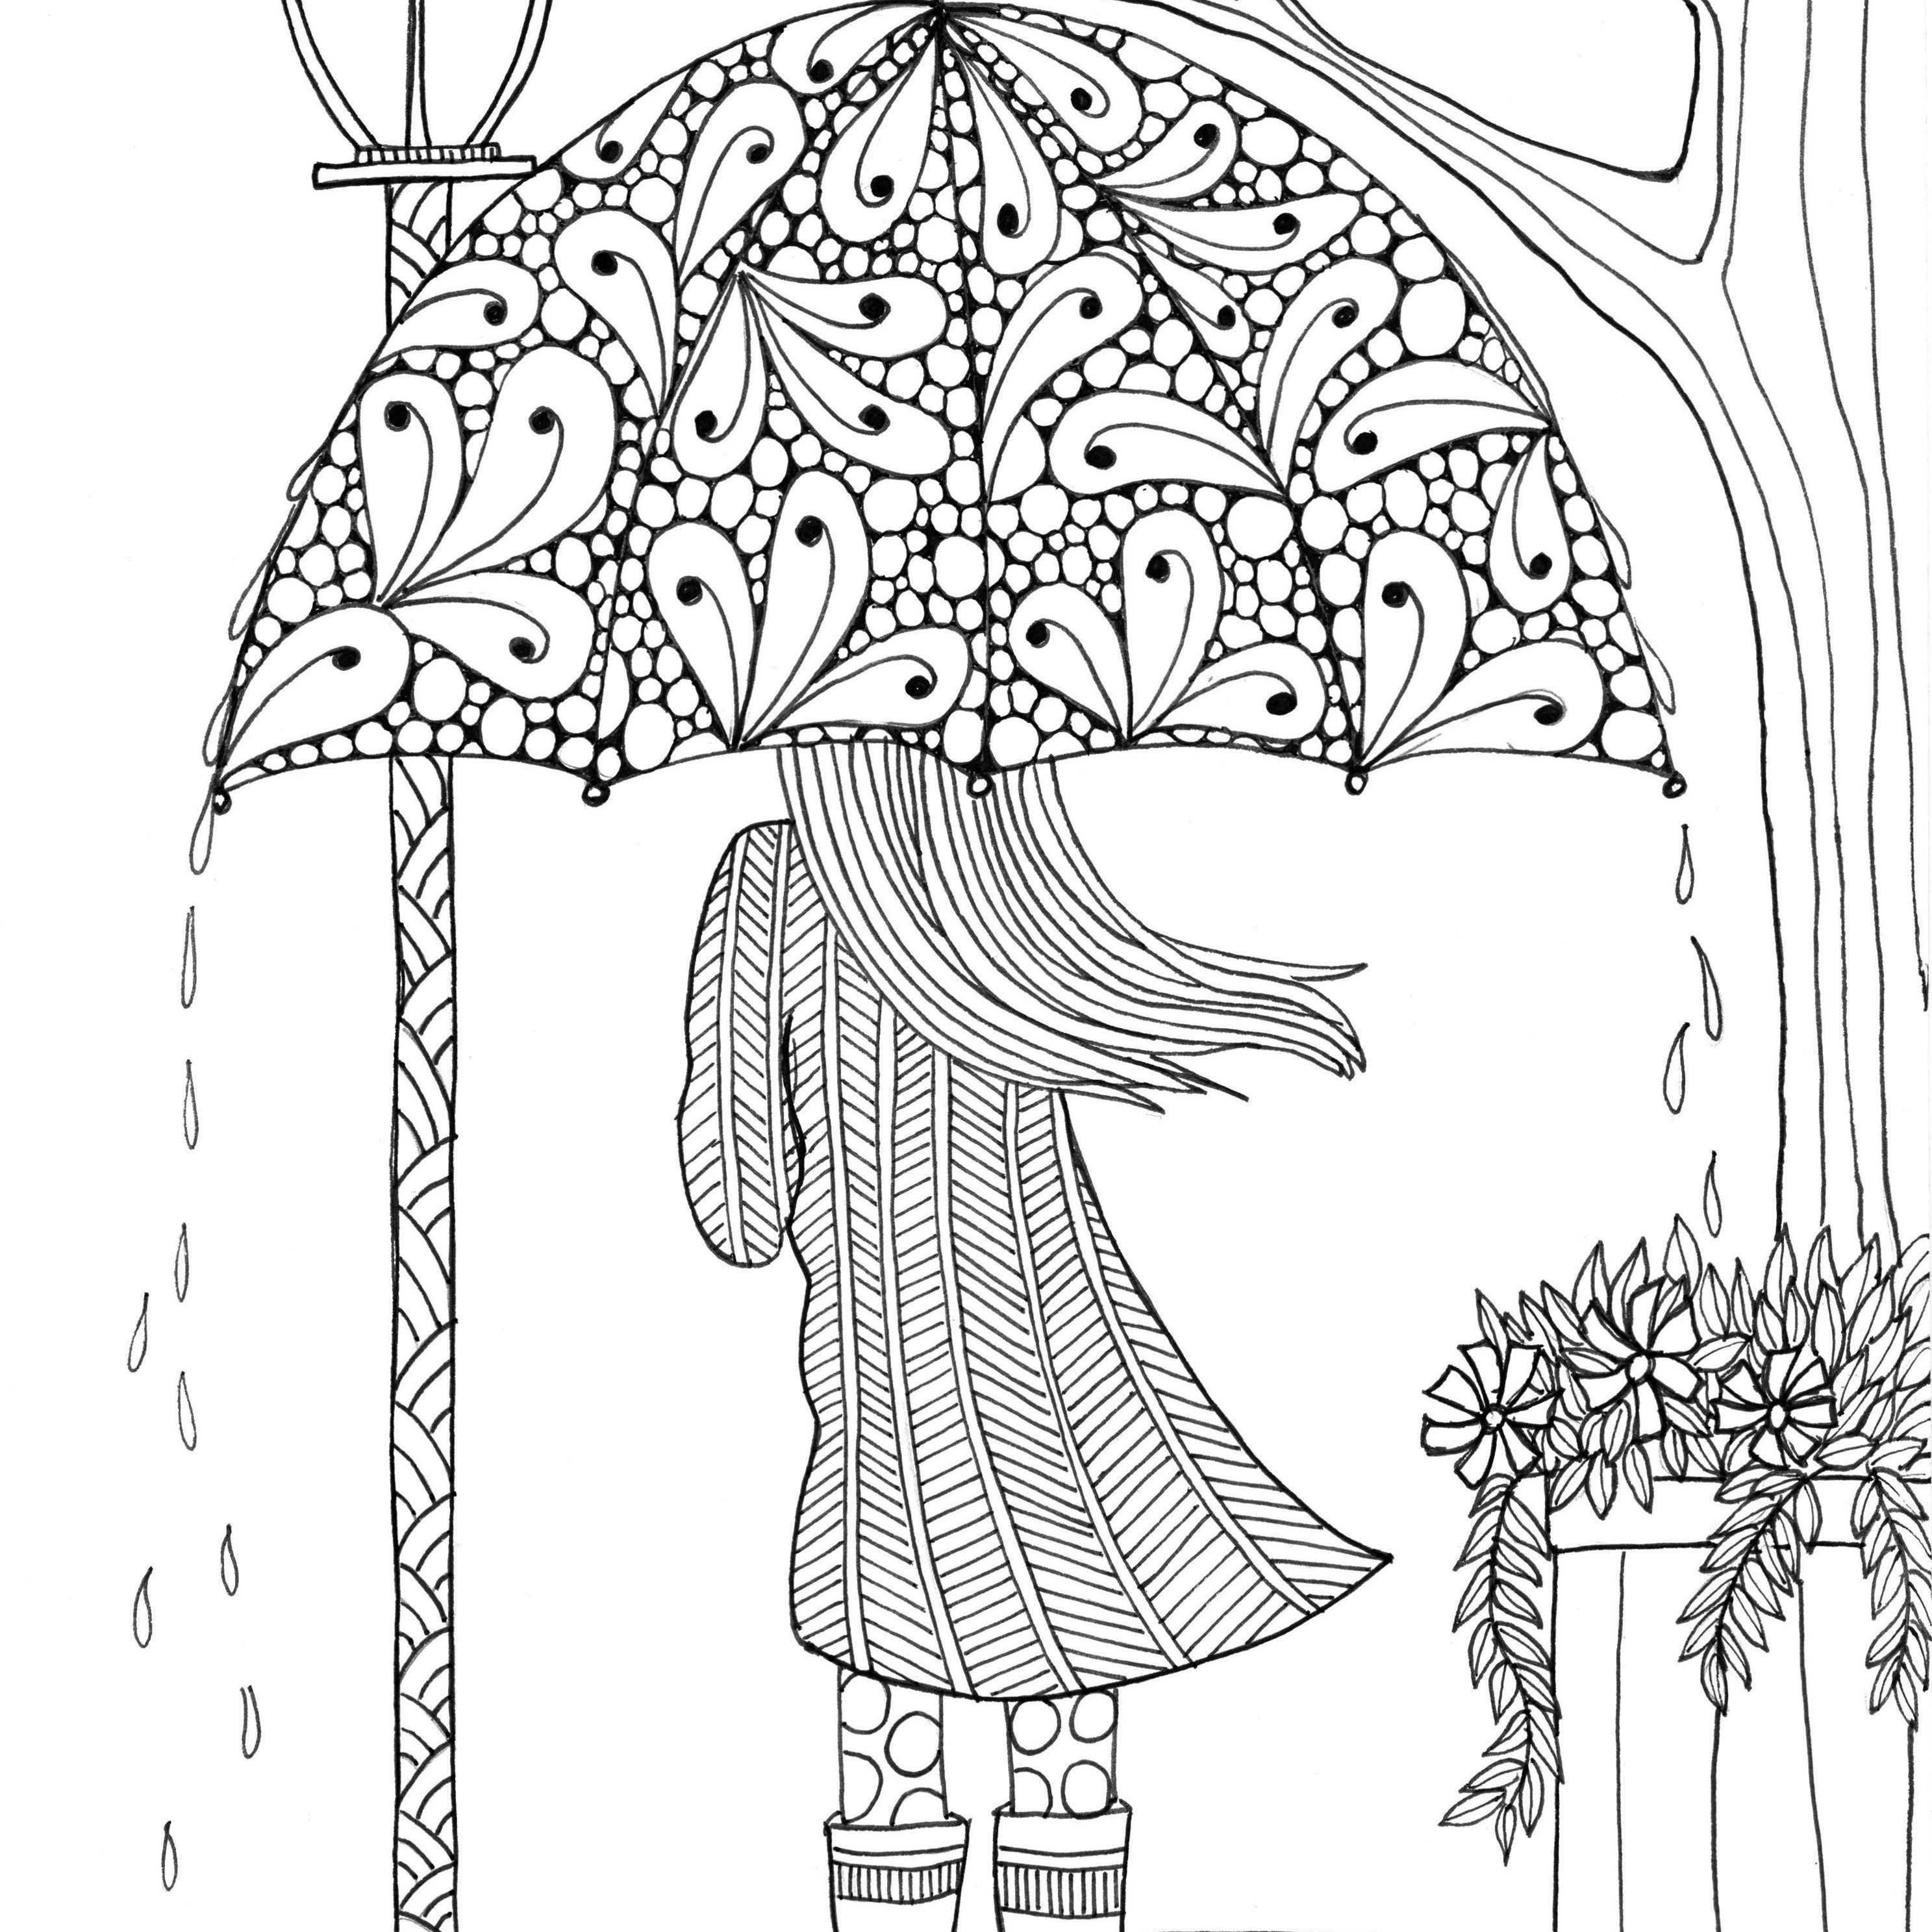 Free, Printable Coloring Pages For Adults - Free Printable Coloring Books For Adults